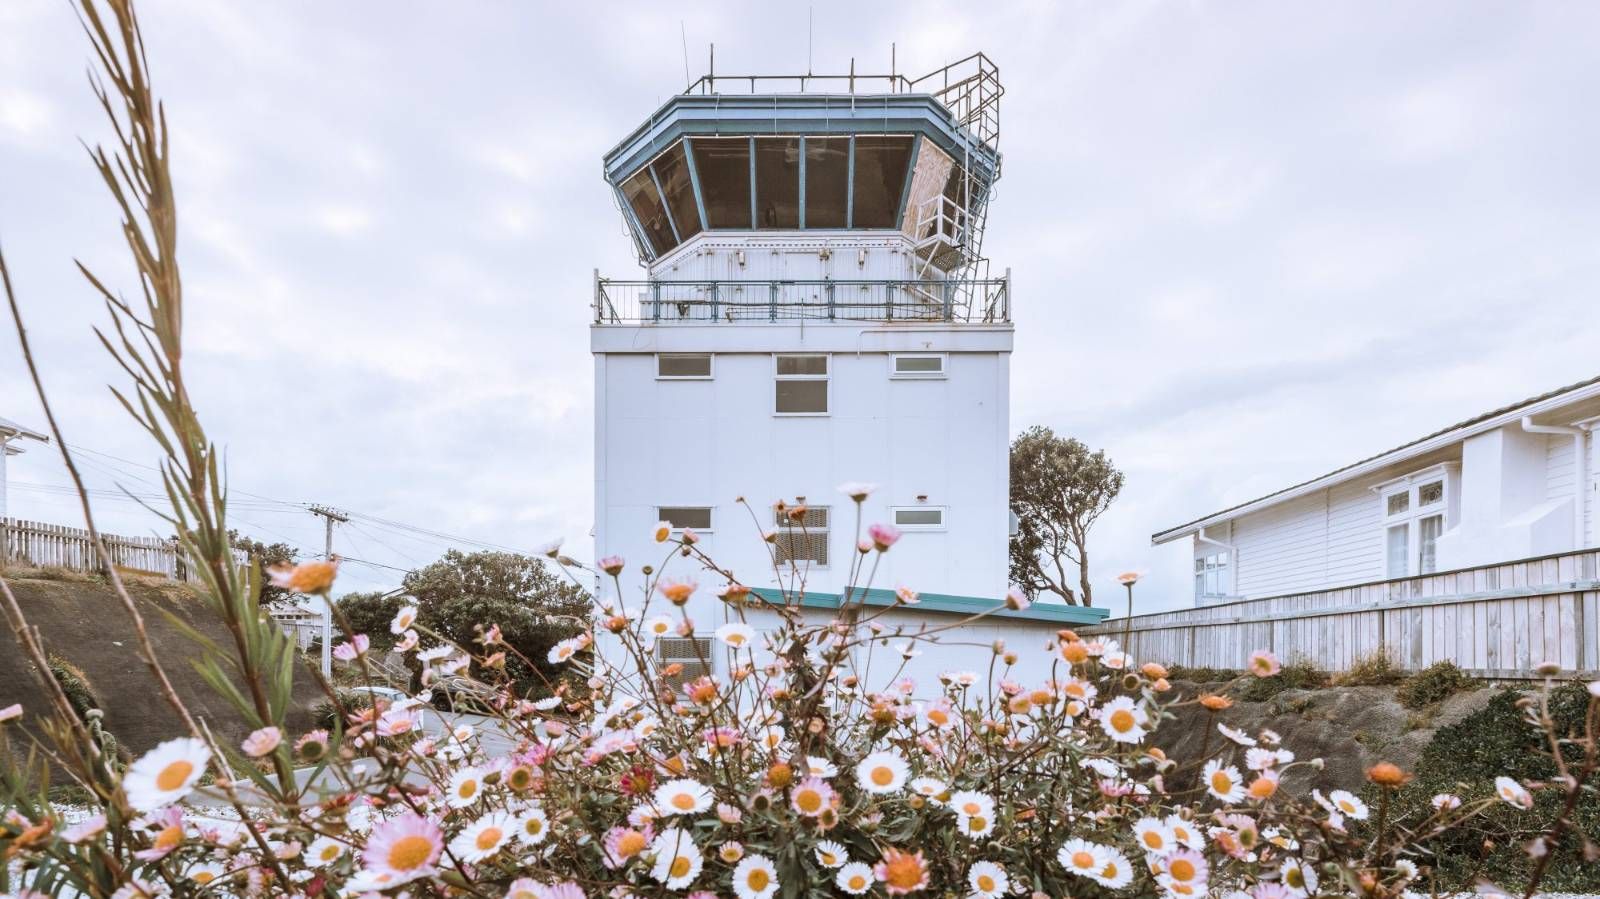 Sold! Wellington's old air traffic control tower off the market